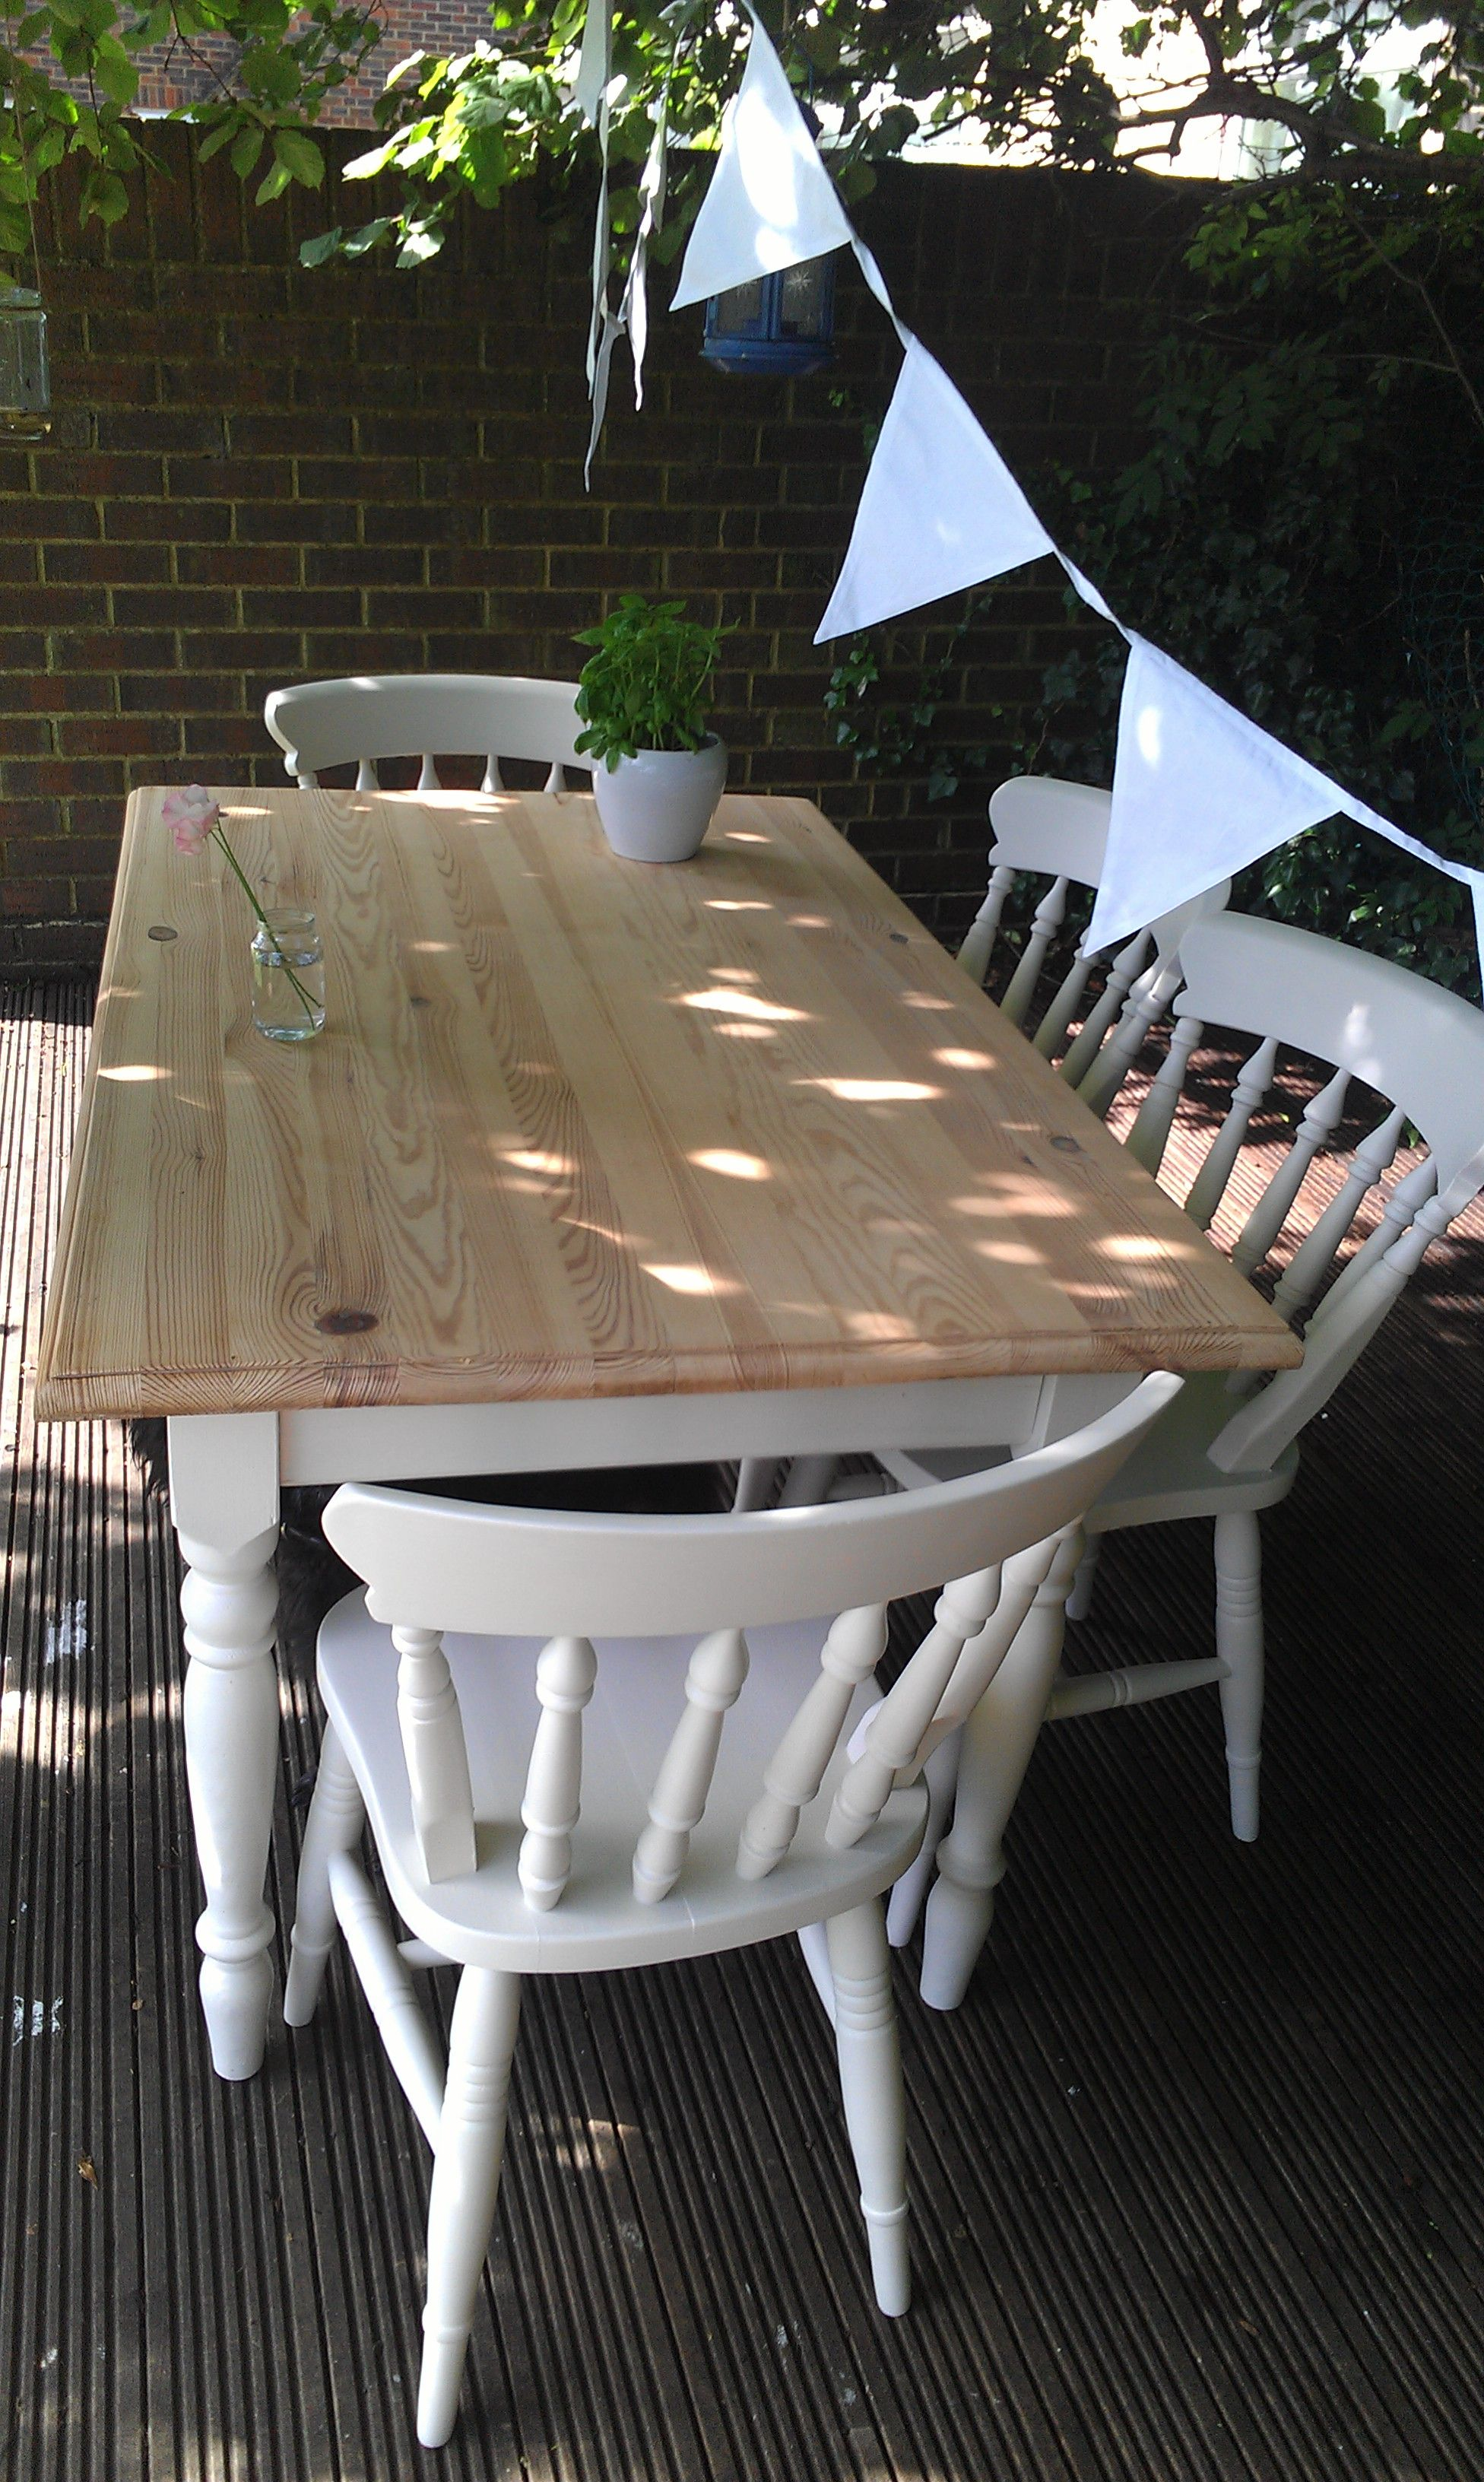 Upcycled Table And Chairs Painted Pine Shabby Chic Style